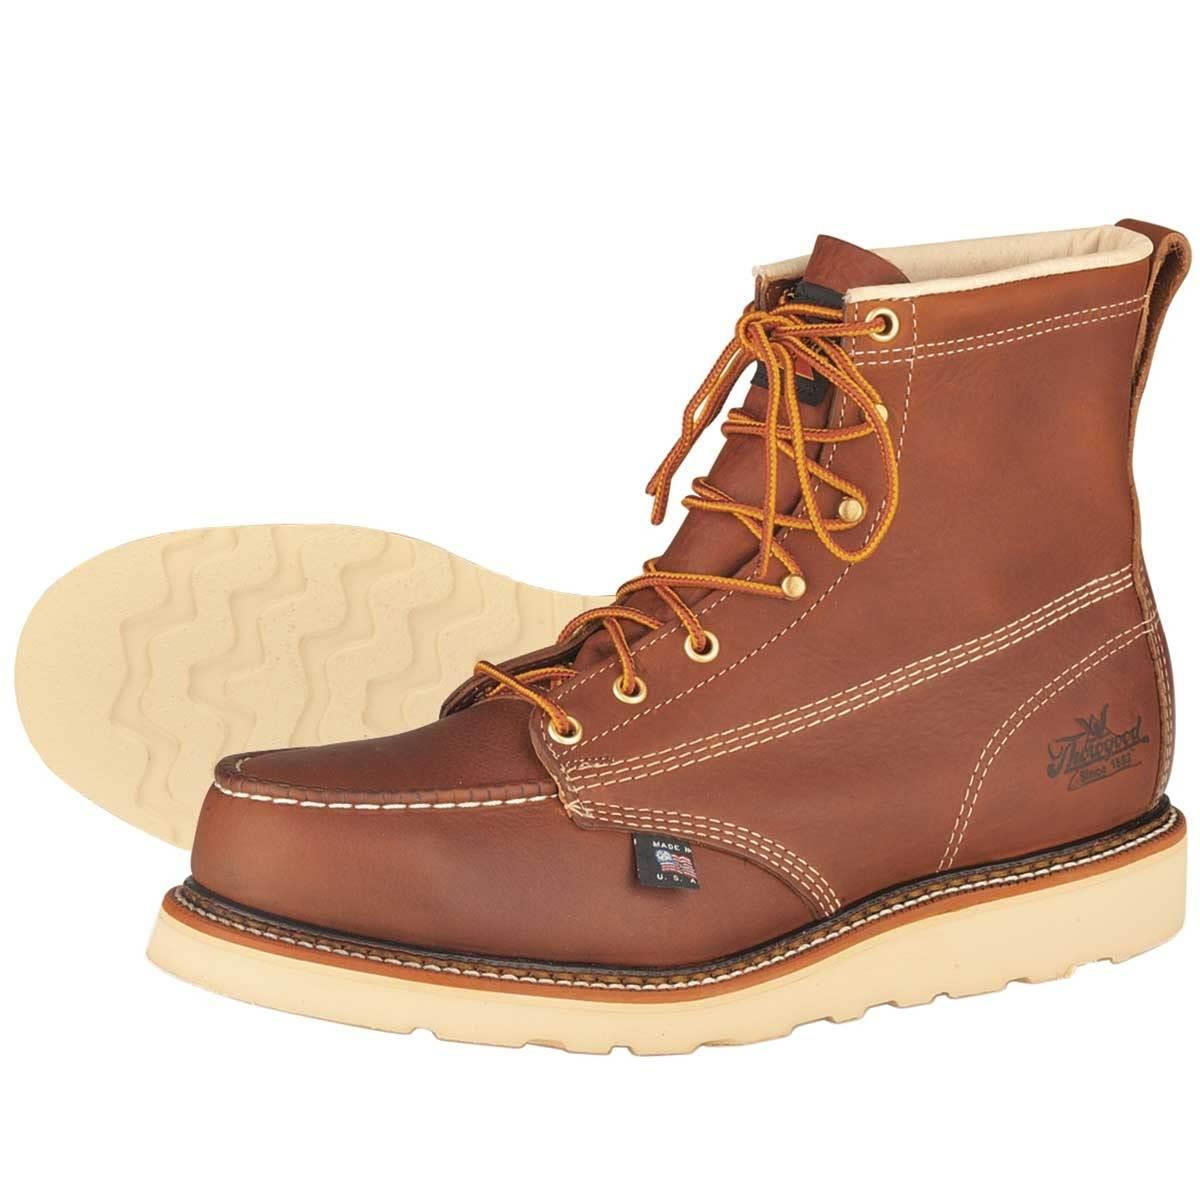 Thorogood American Heritage 6 Quot H Wedge Sole Moc Toe Boots